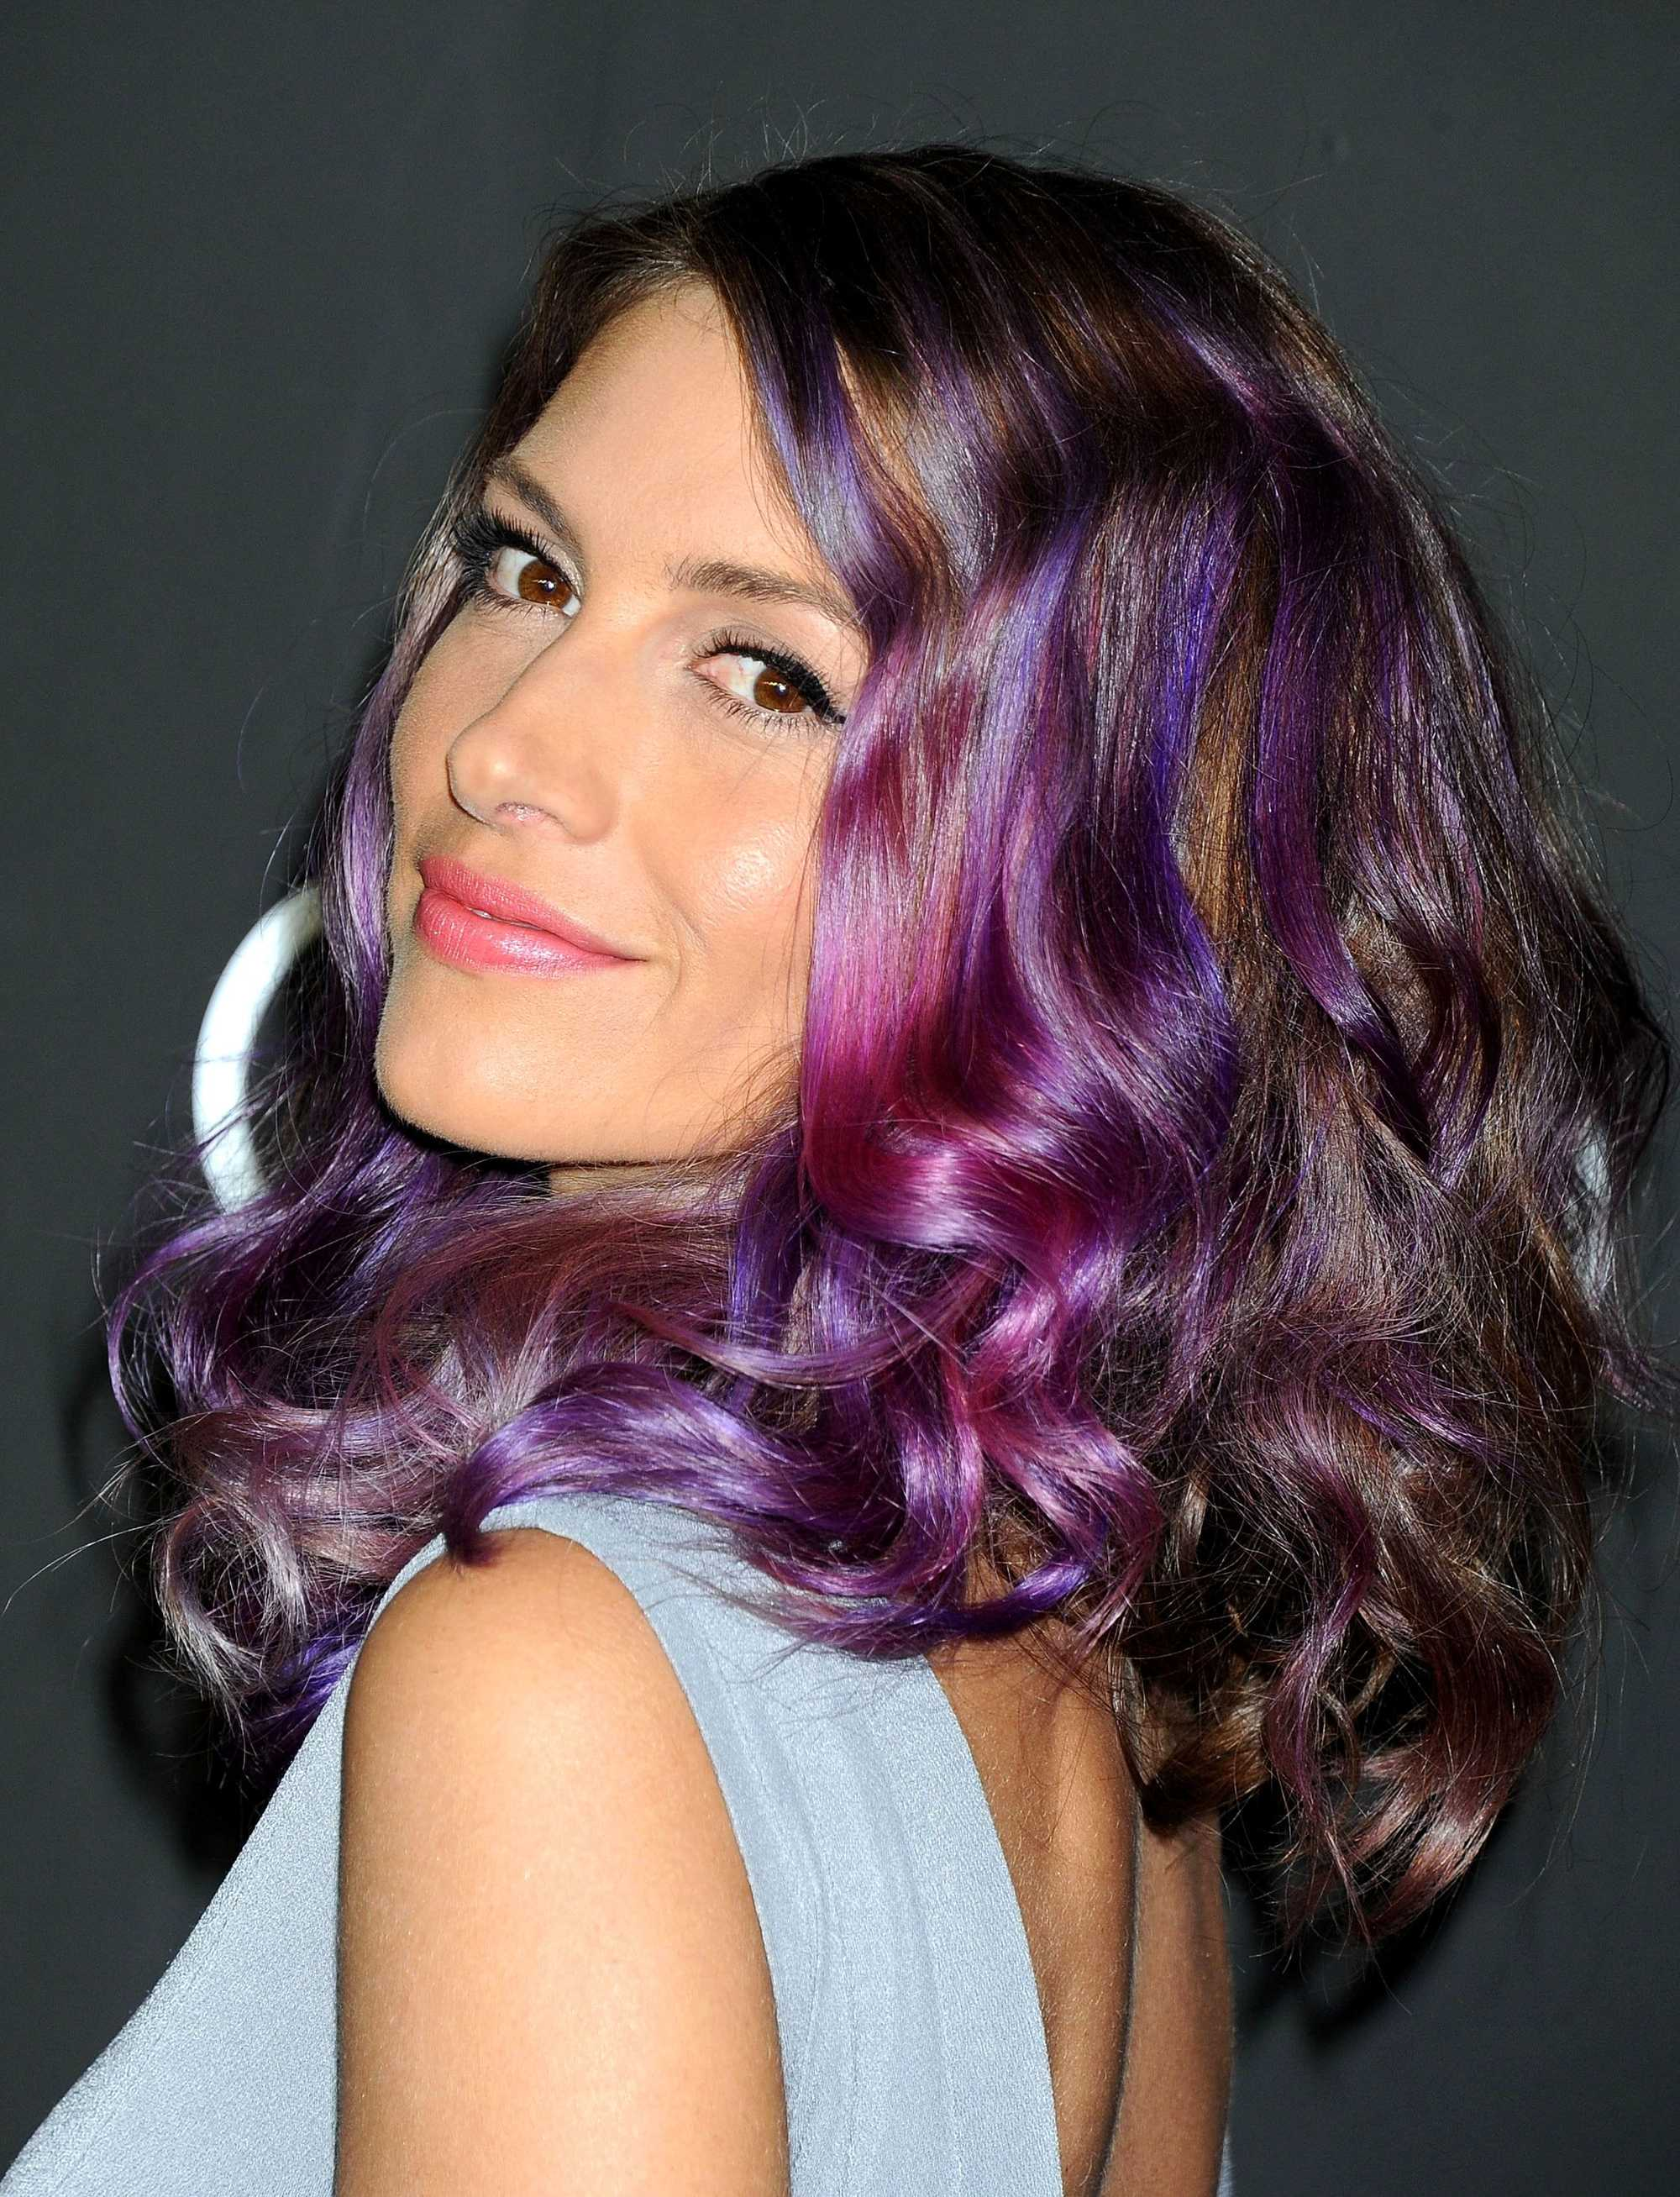 dawn olivieri with purple highlights in her hair